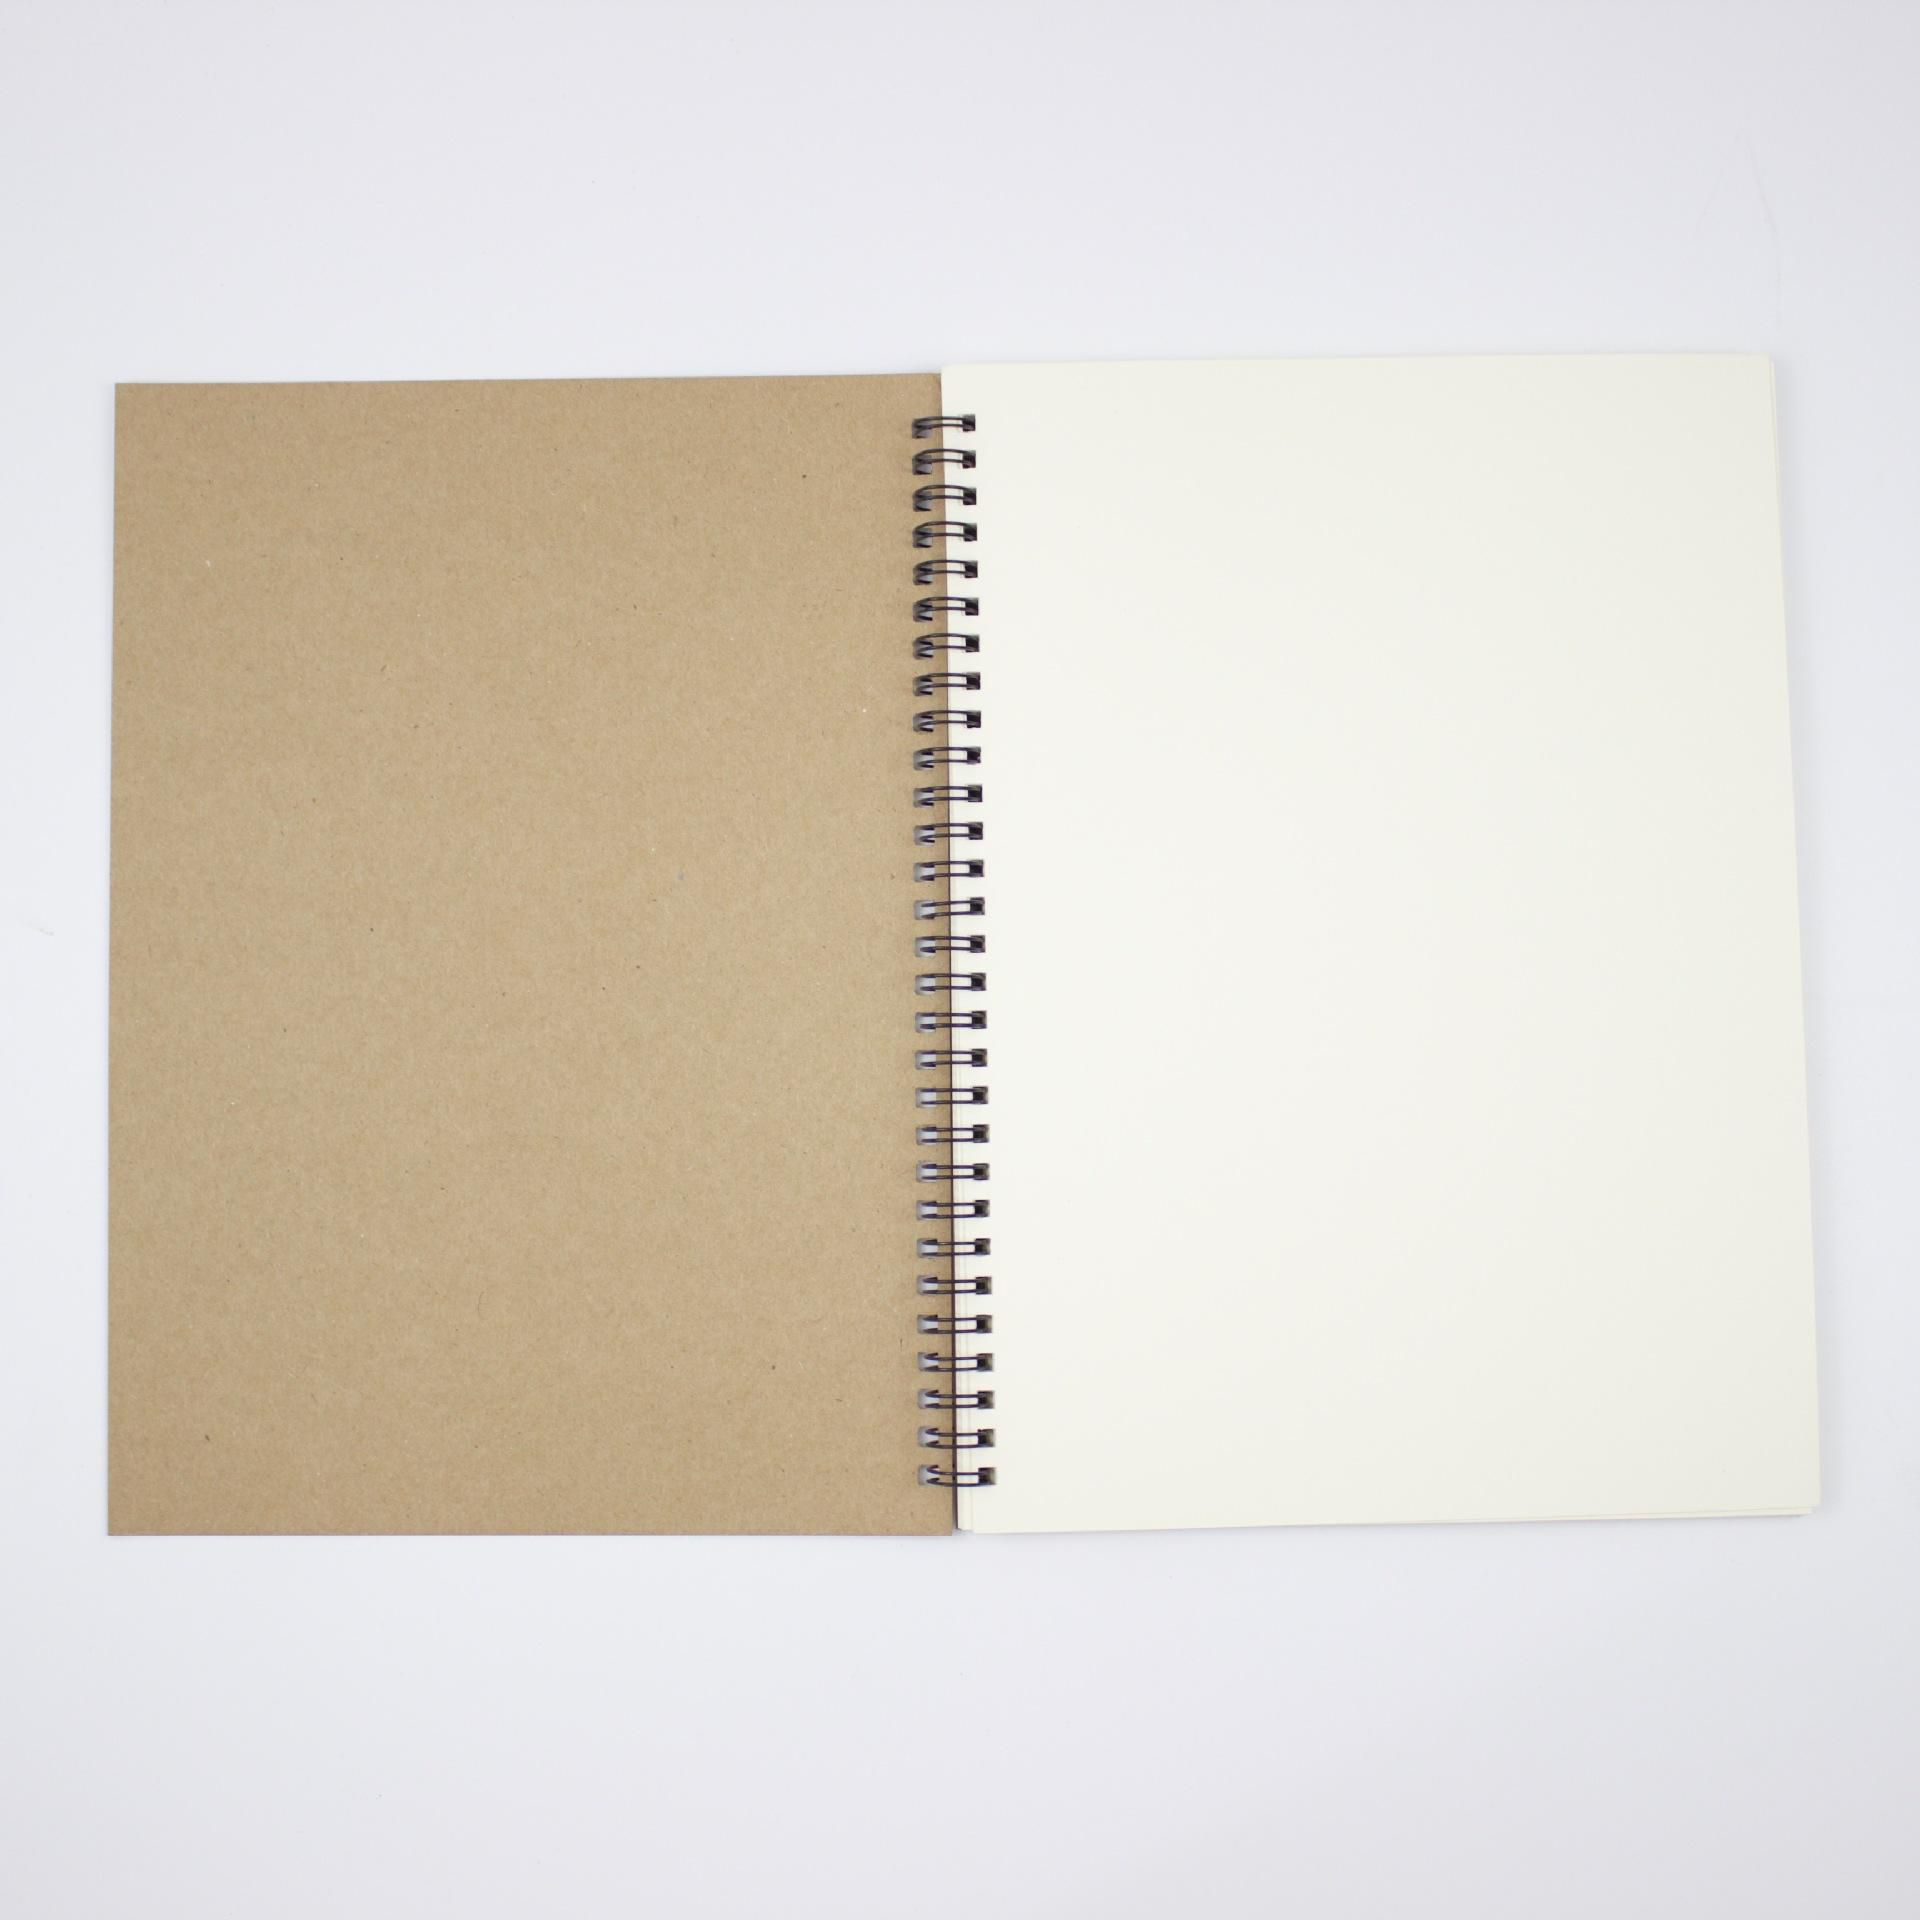 Notebook is good looking and useful. It is worth buying and customizing.